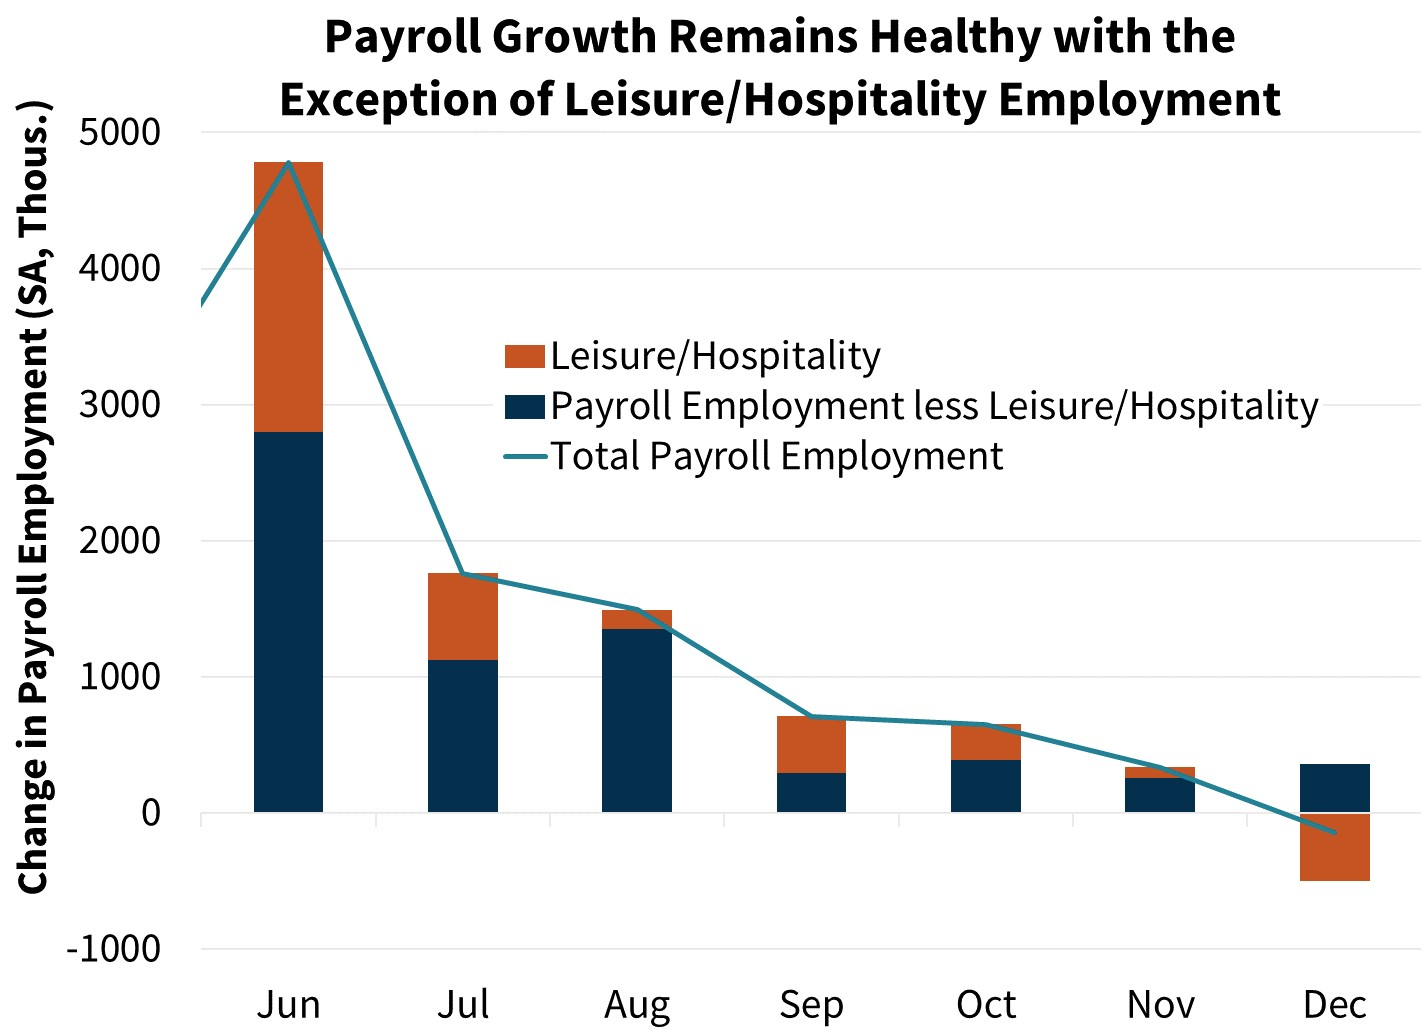 Payroll Growth Remains Healthy with the Exception of Leisure/Hospitality Employment